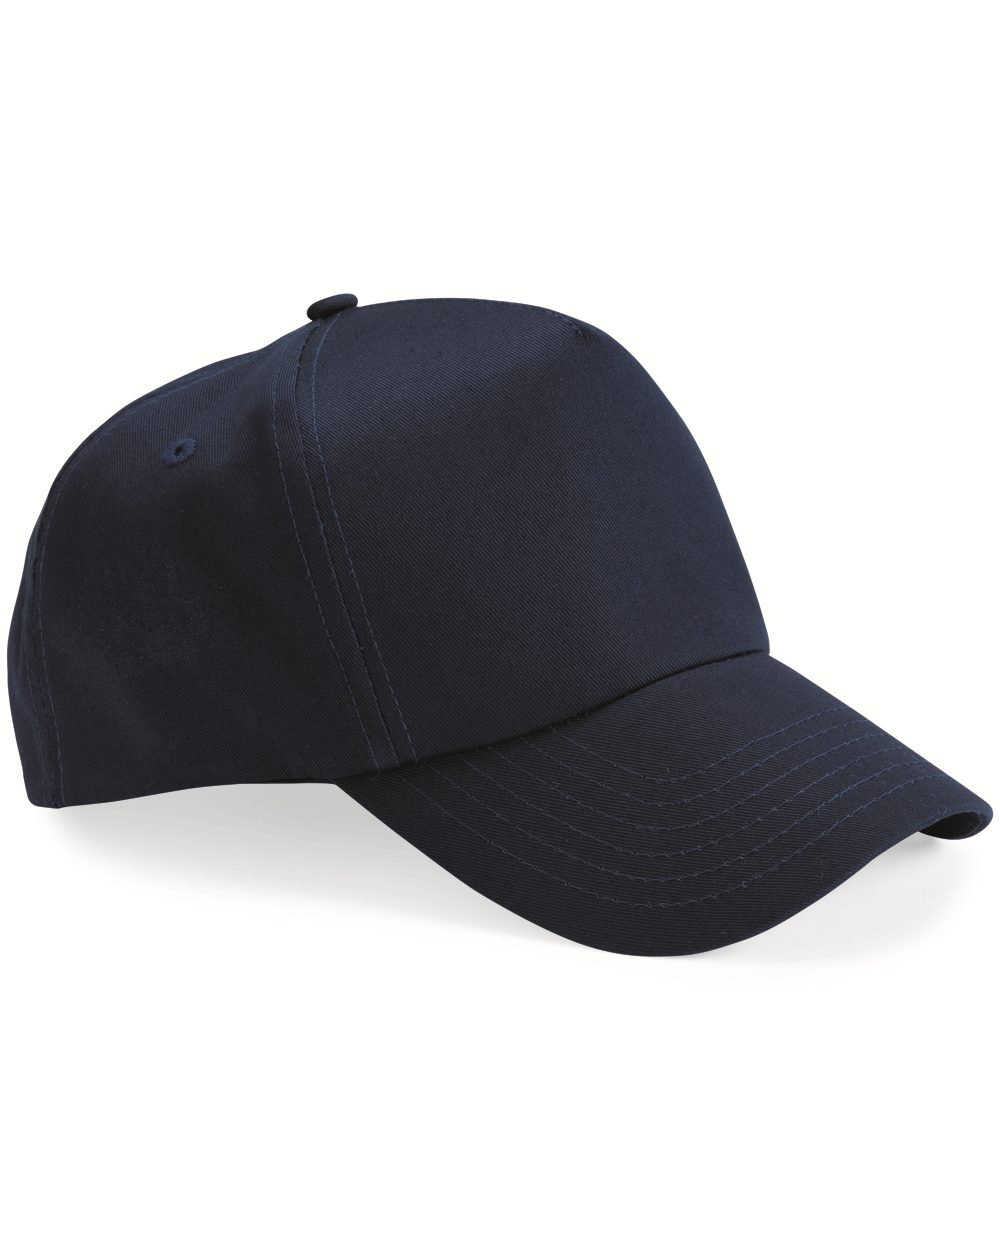 Valucap 8869 Five-Panel Twill Cap